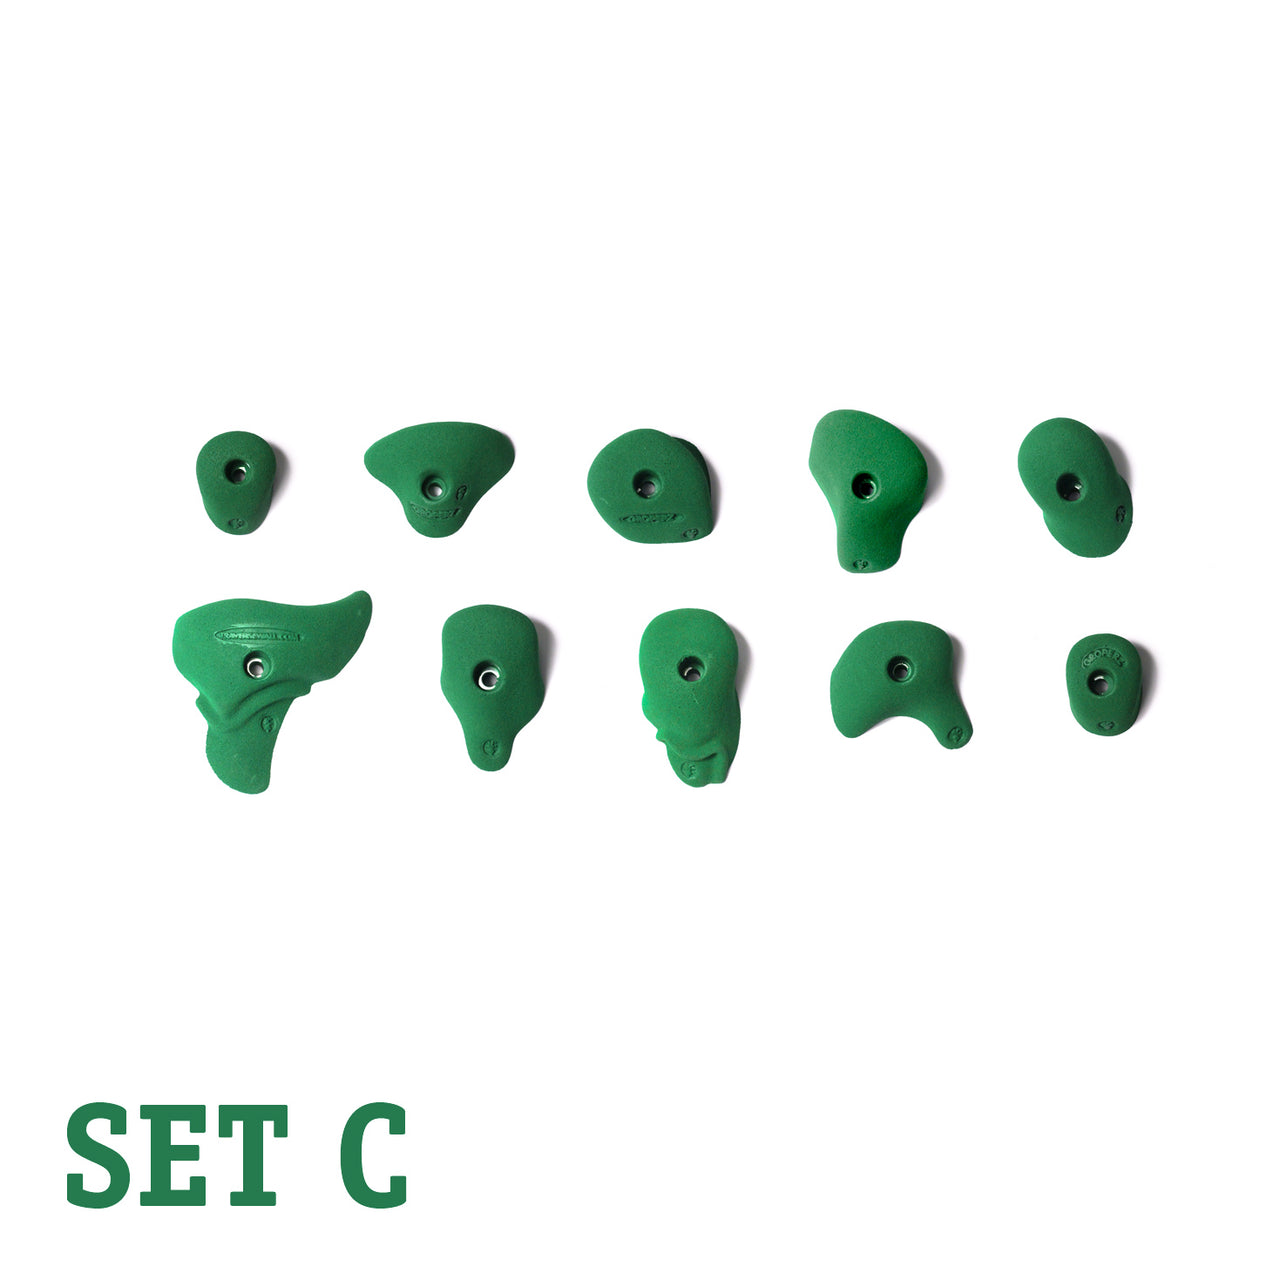 Groperz Beginner Route-Setting Hand Holds – Set C